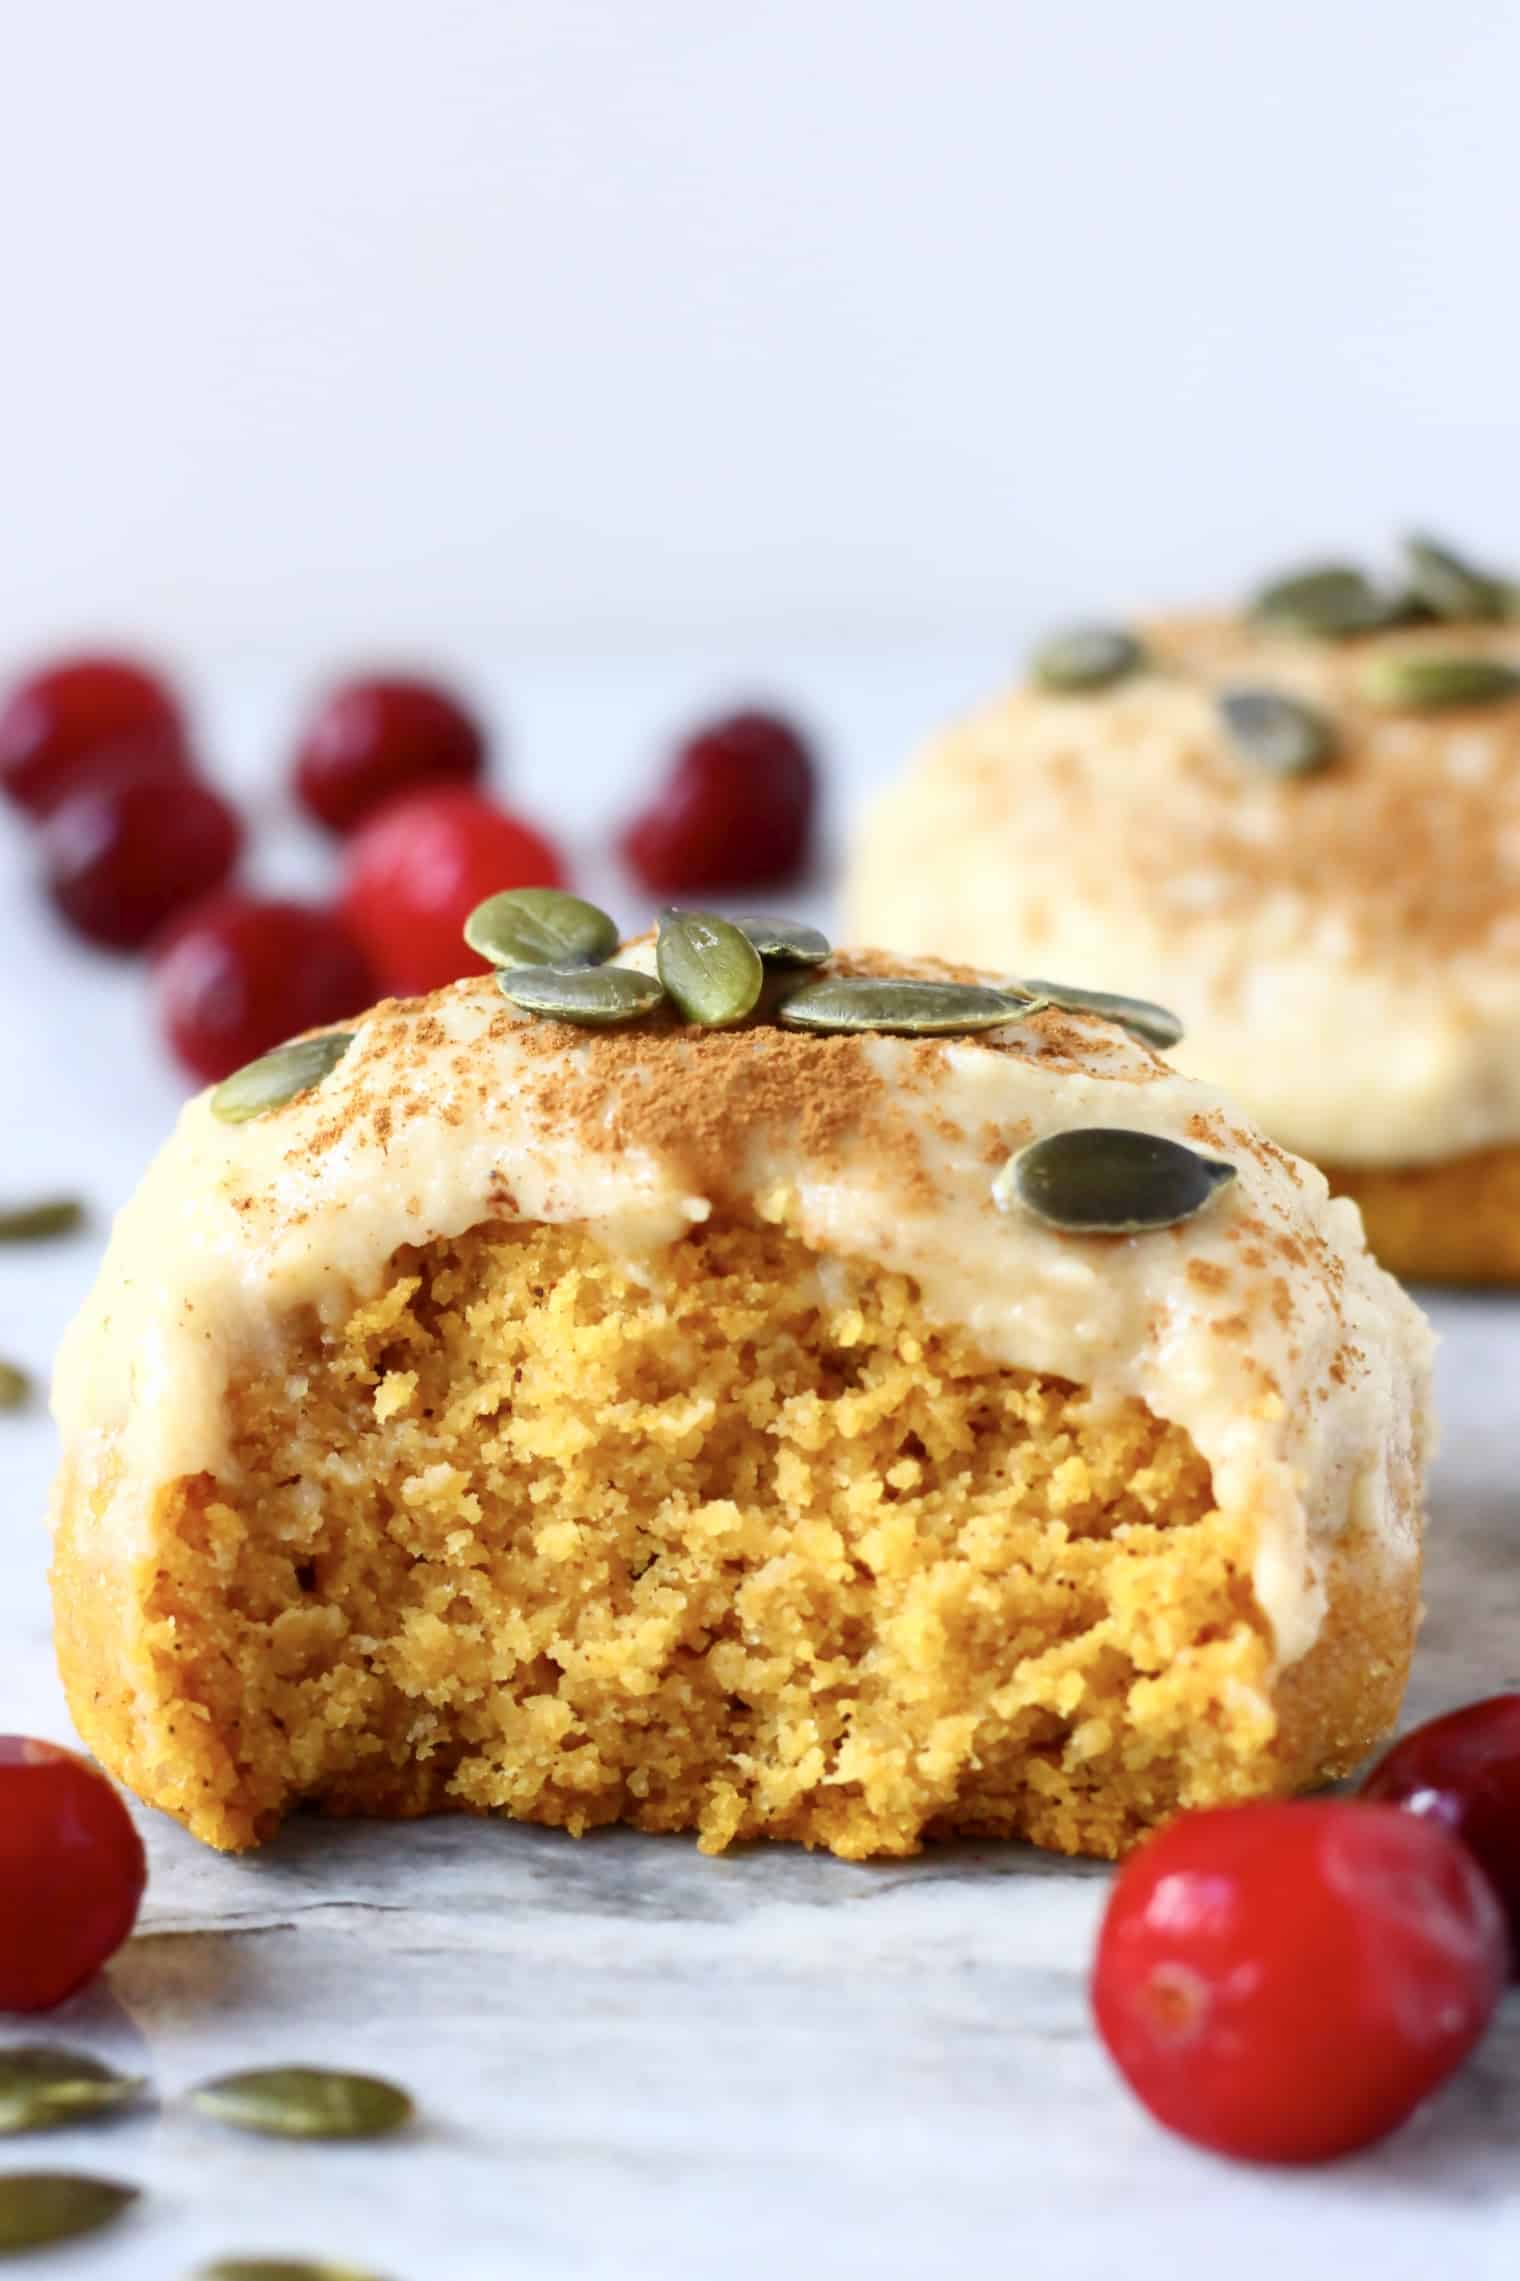 A halved gluten-free vegan pumpkin cookie topped with white frosting and pumpkin seeds